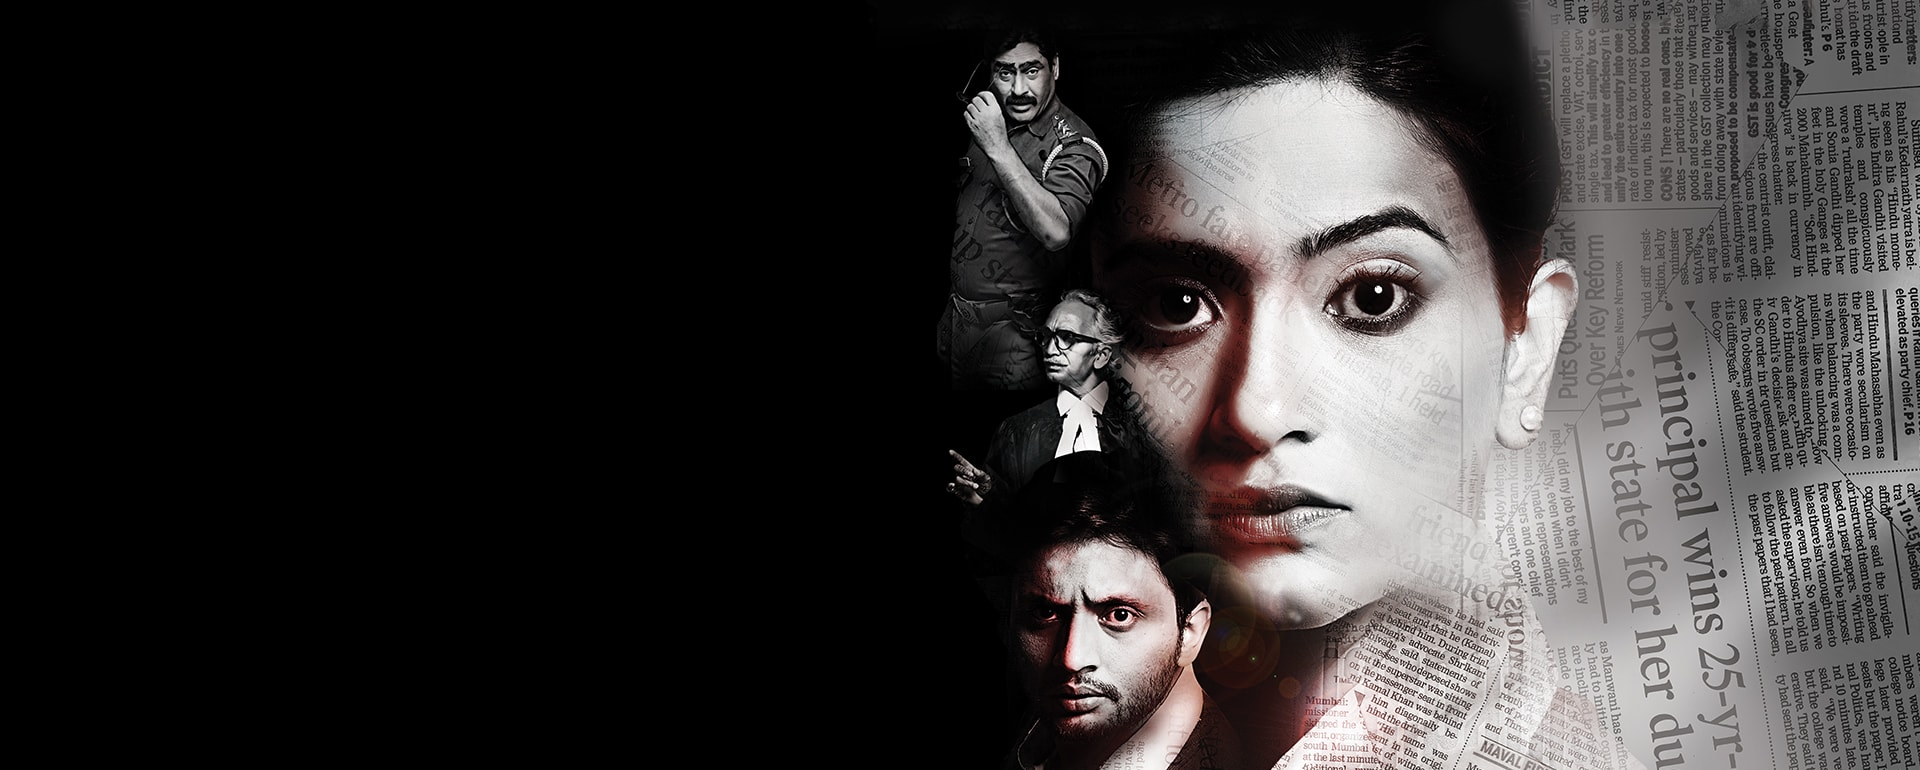 the order full movie in hindi